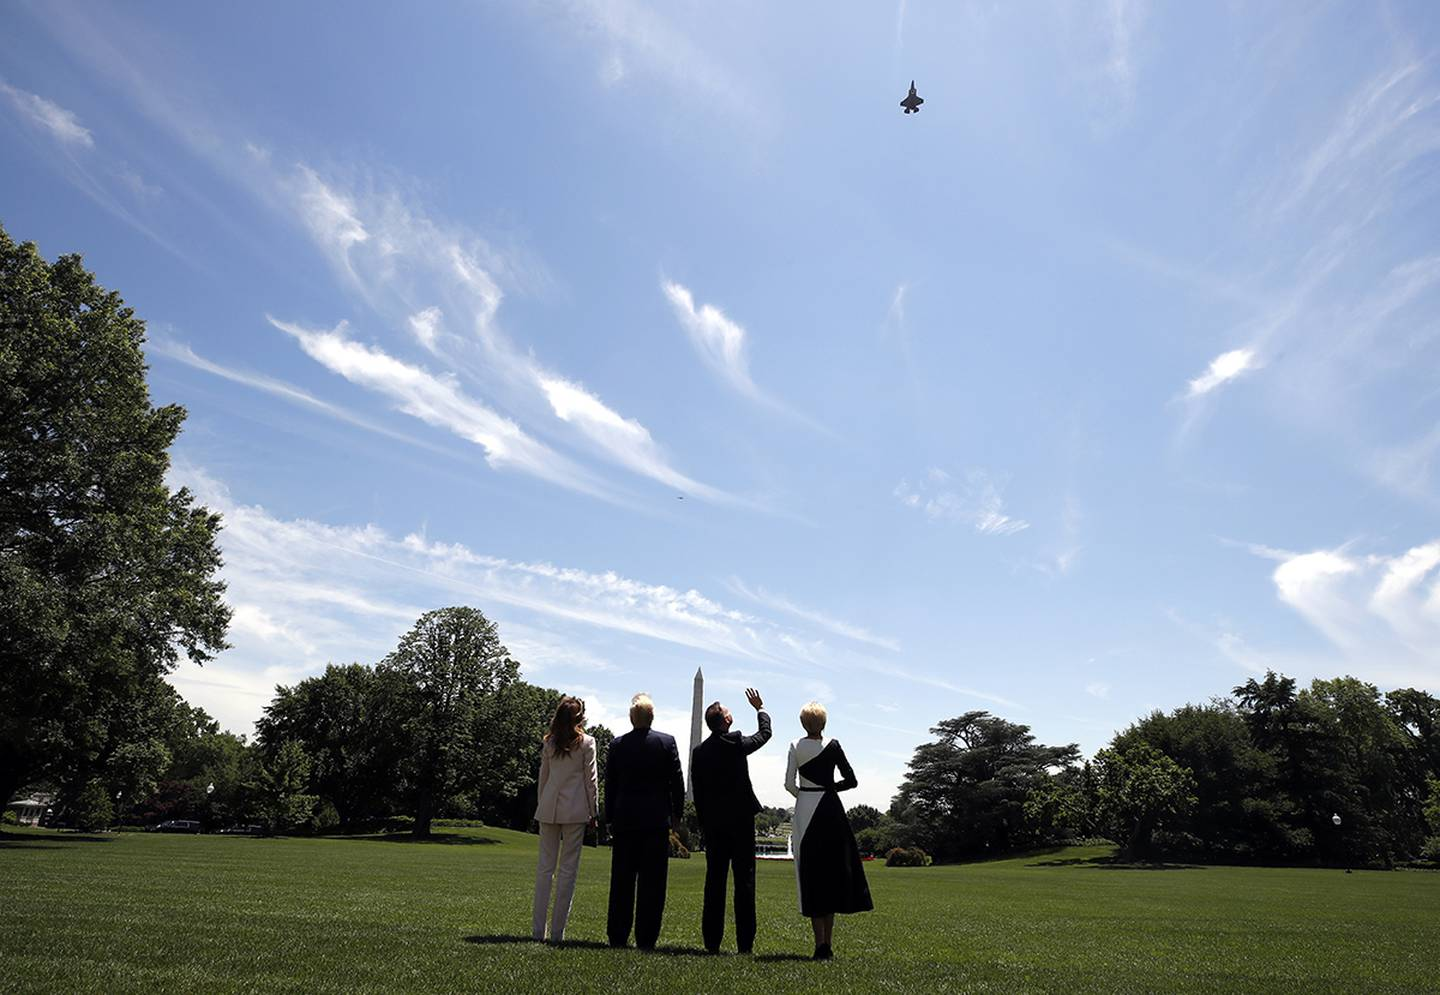 President Donald Trump, first lady Melania Trump, Polish President Andrzej Duda, and his wife Agata Kornhauser-Duda watch a flyover of a F-35 Lightning II jet at the White House, Wednesday, June 12, 2019, in Washington.